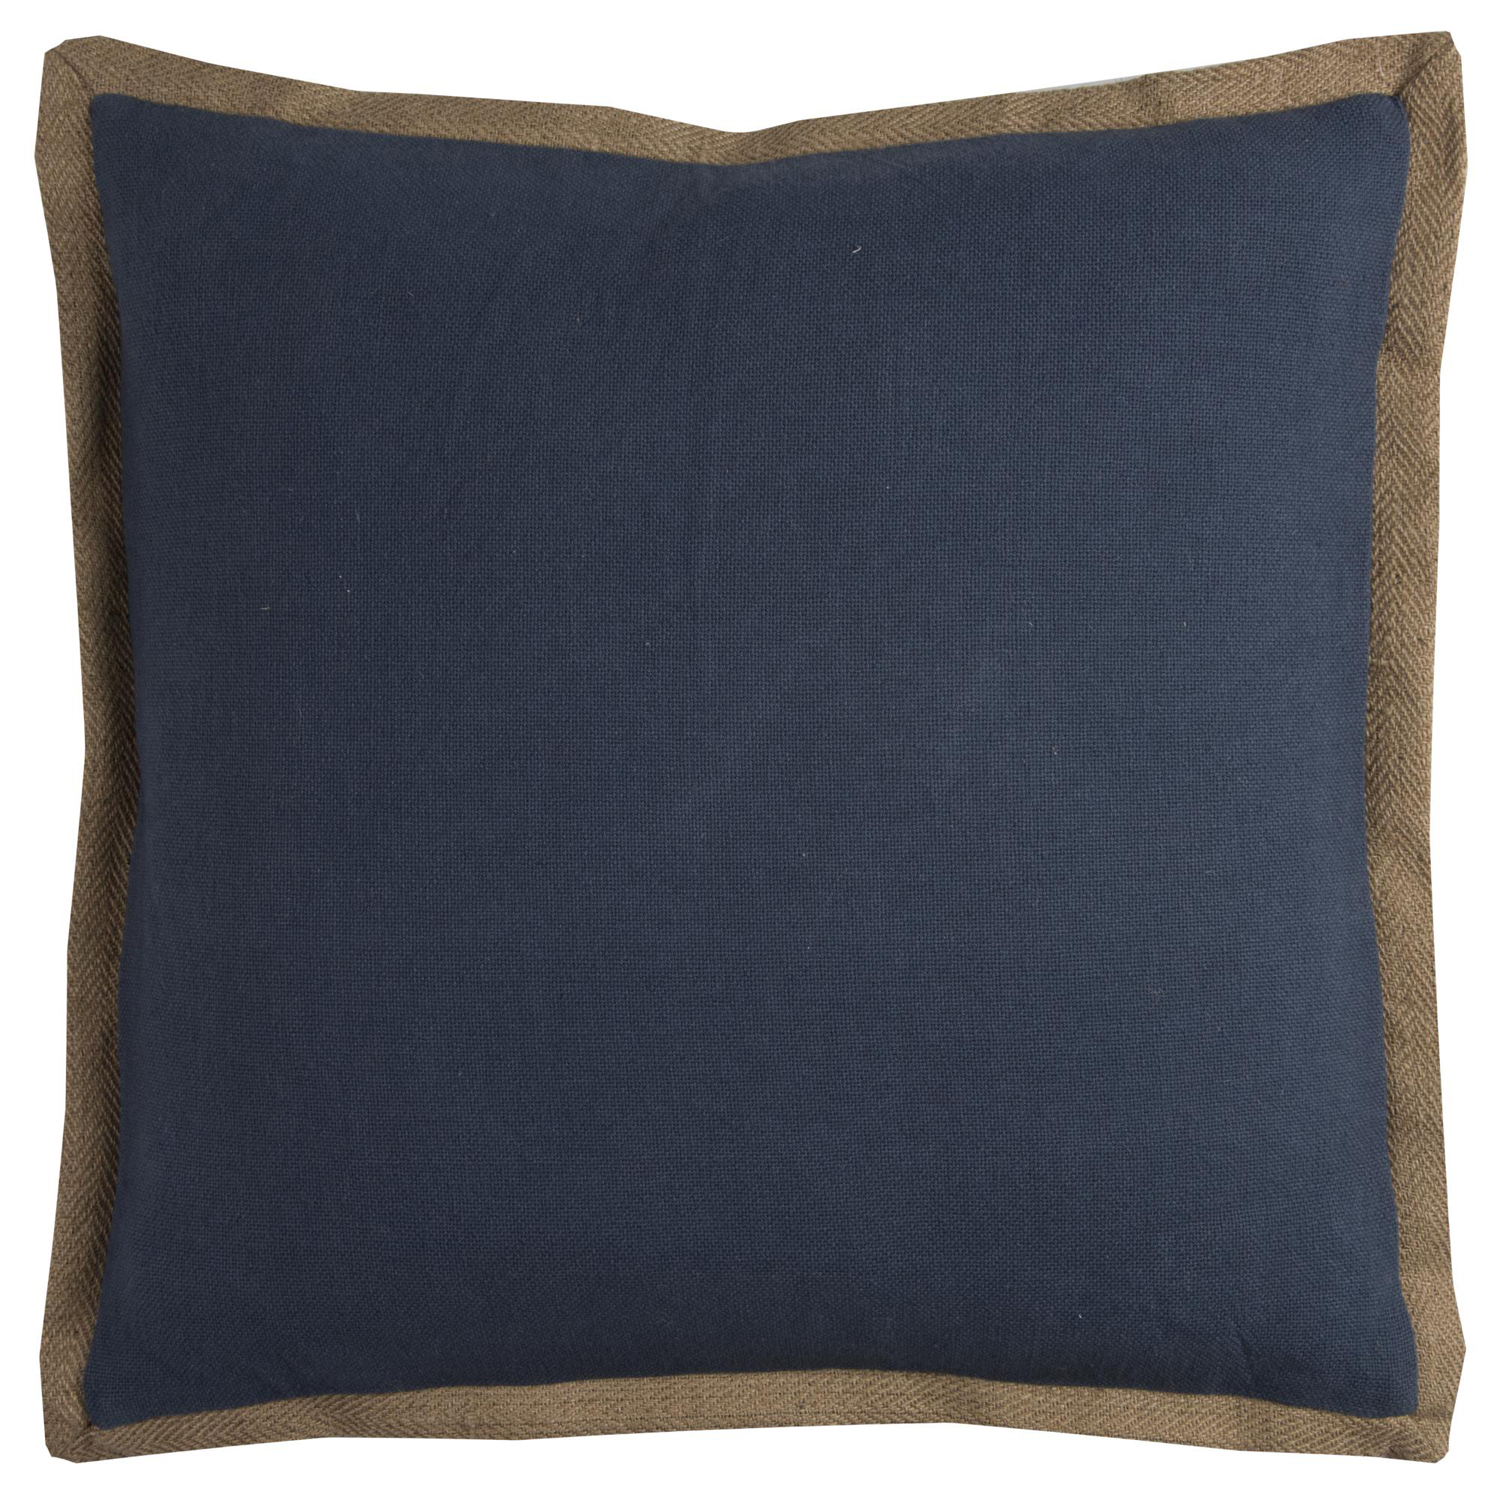 Trimmed Solid Blue Pillow Cover